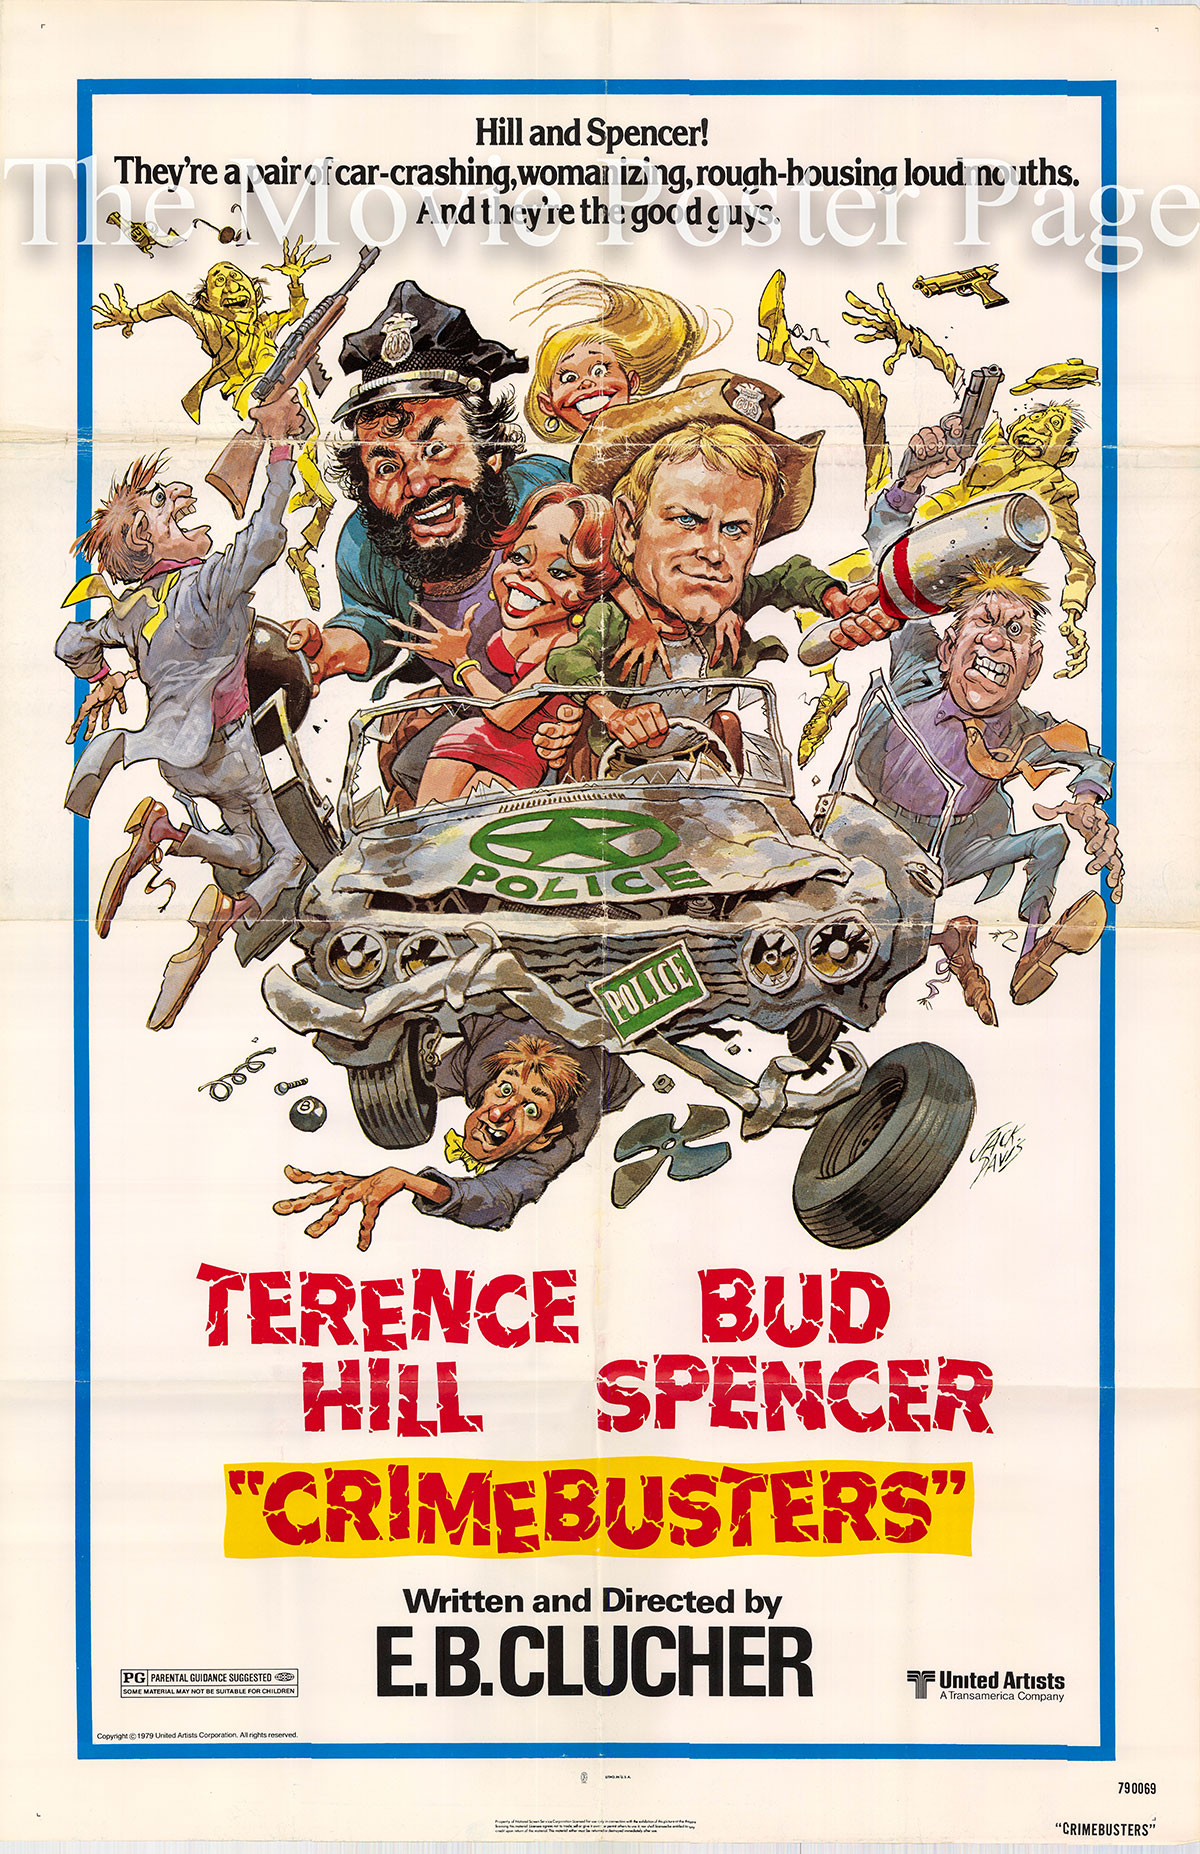 Pictured is a US promotional poster for the 1976 Enzo Barboni film Crime Busters, starring Terence Hill.